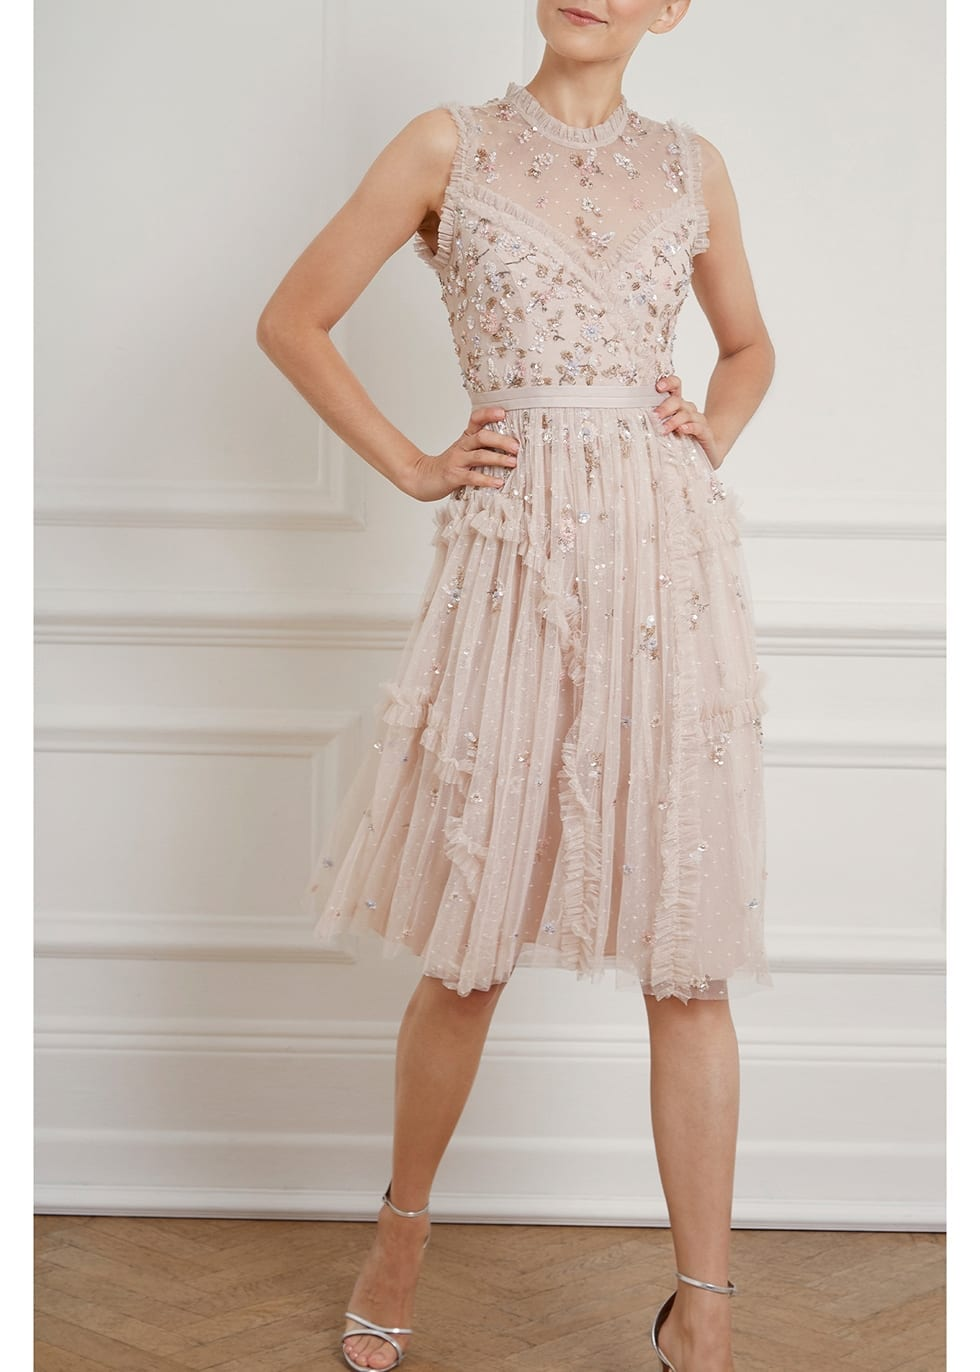 NEEDLE & THREAD Shimmer Ditsy Blush Embellished Tulle Dress